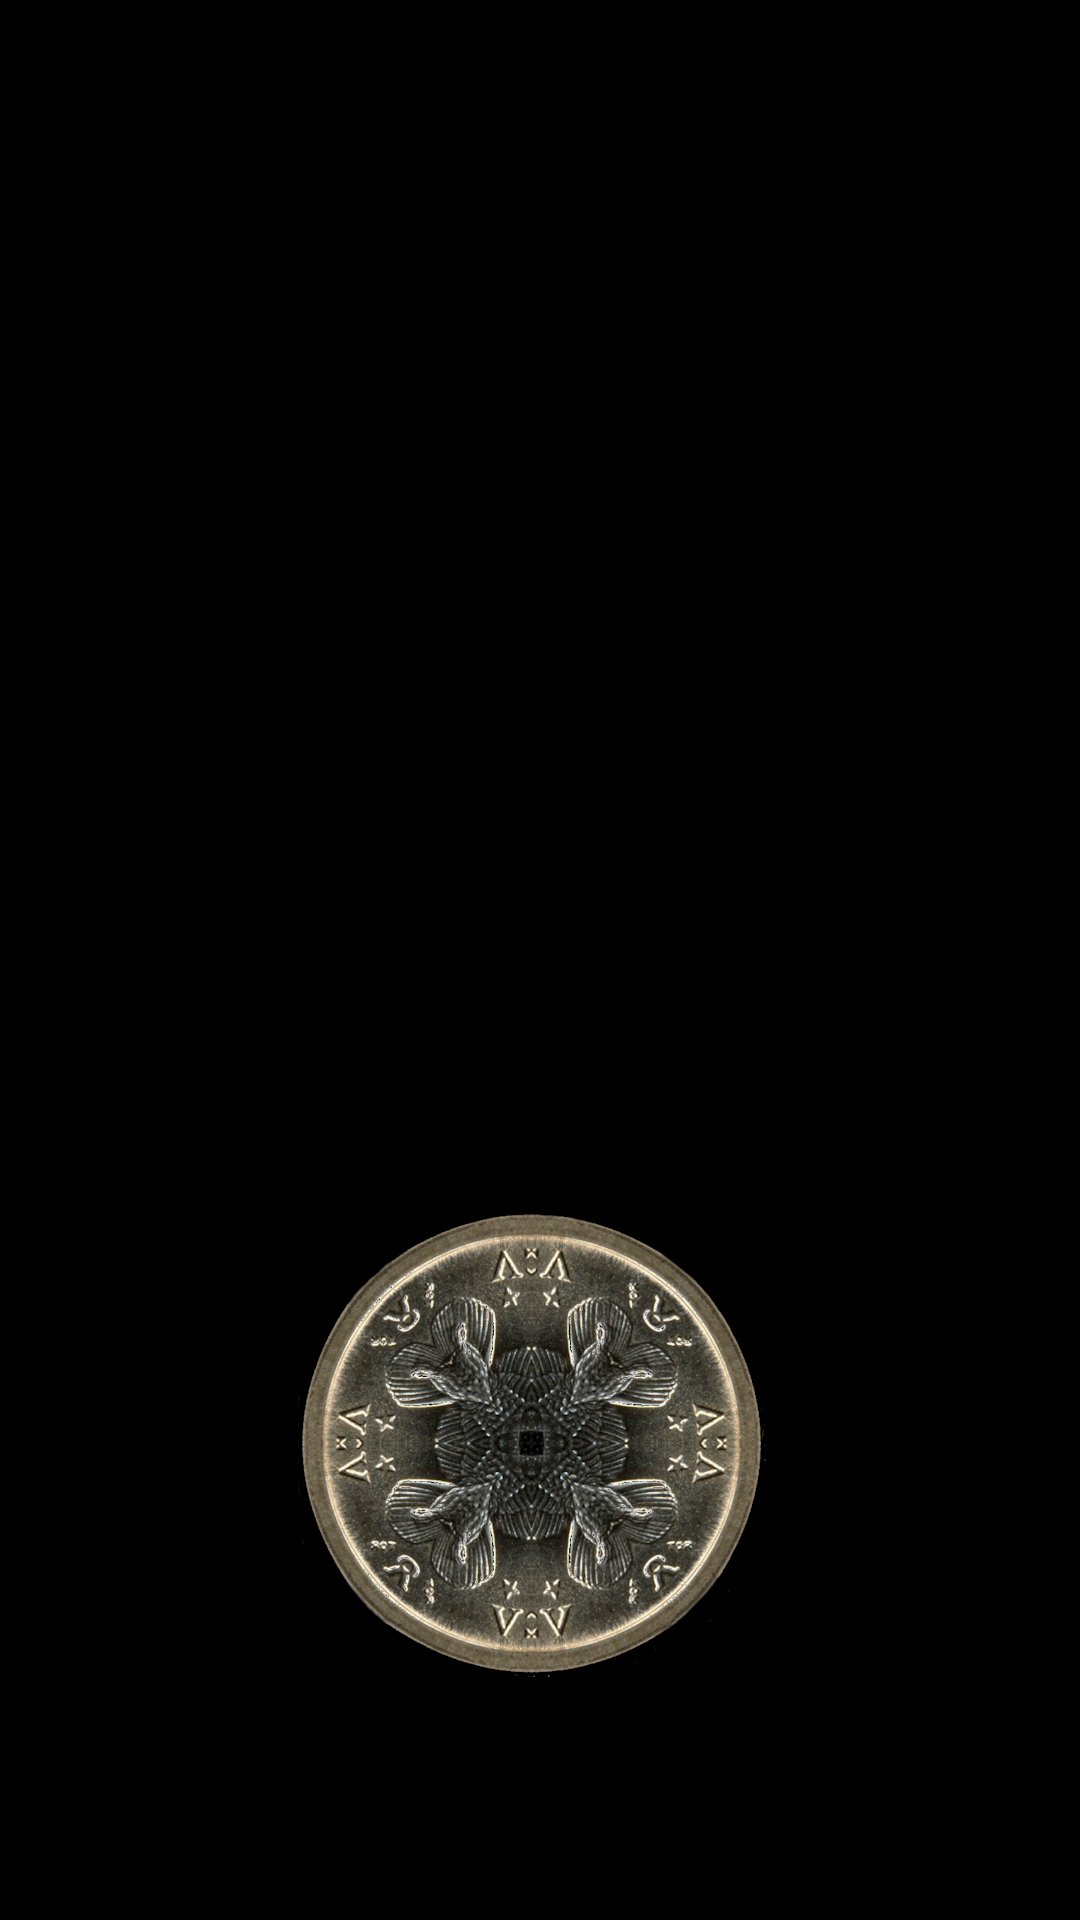 Stargate Coin Cell Phone Wallpaper by mitsubishiman 1080x1920